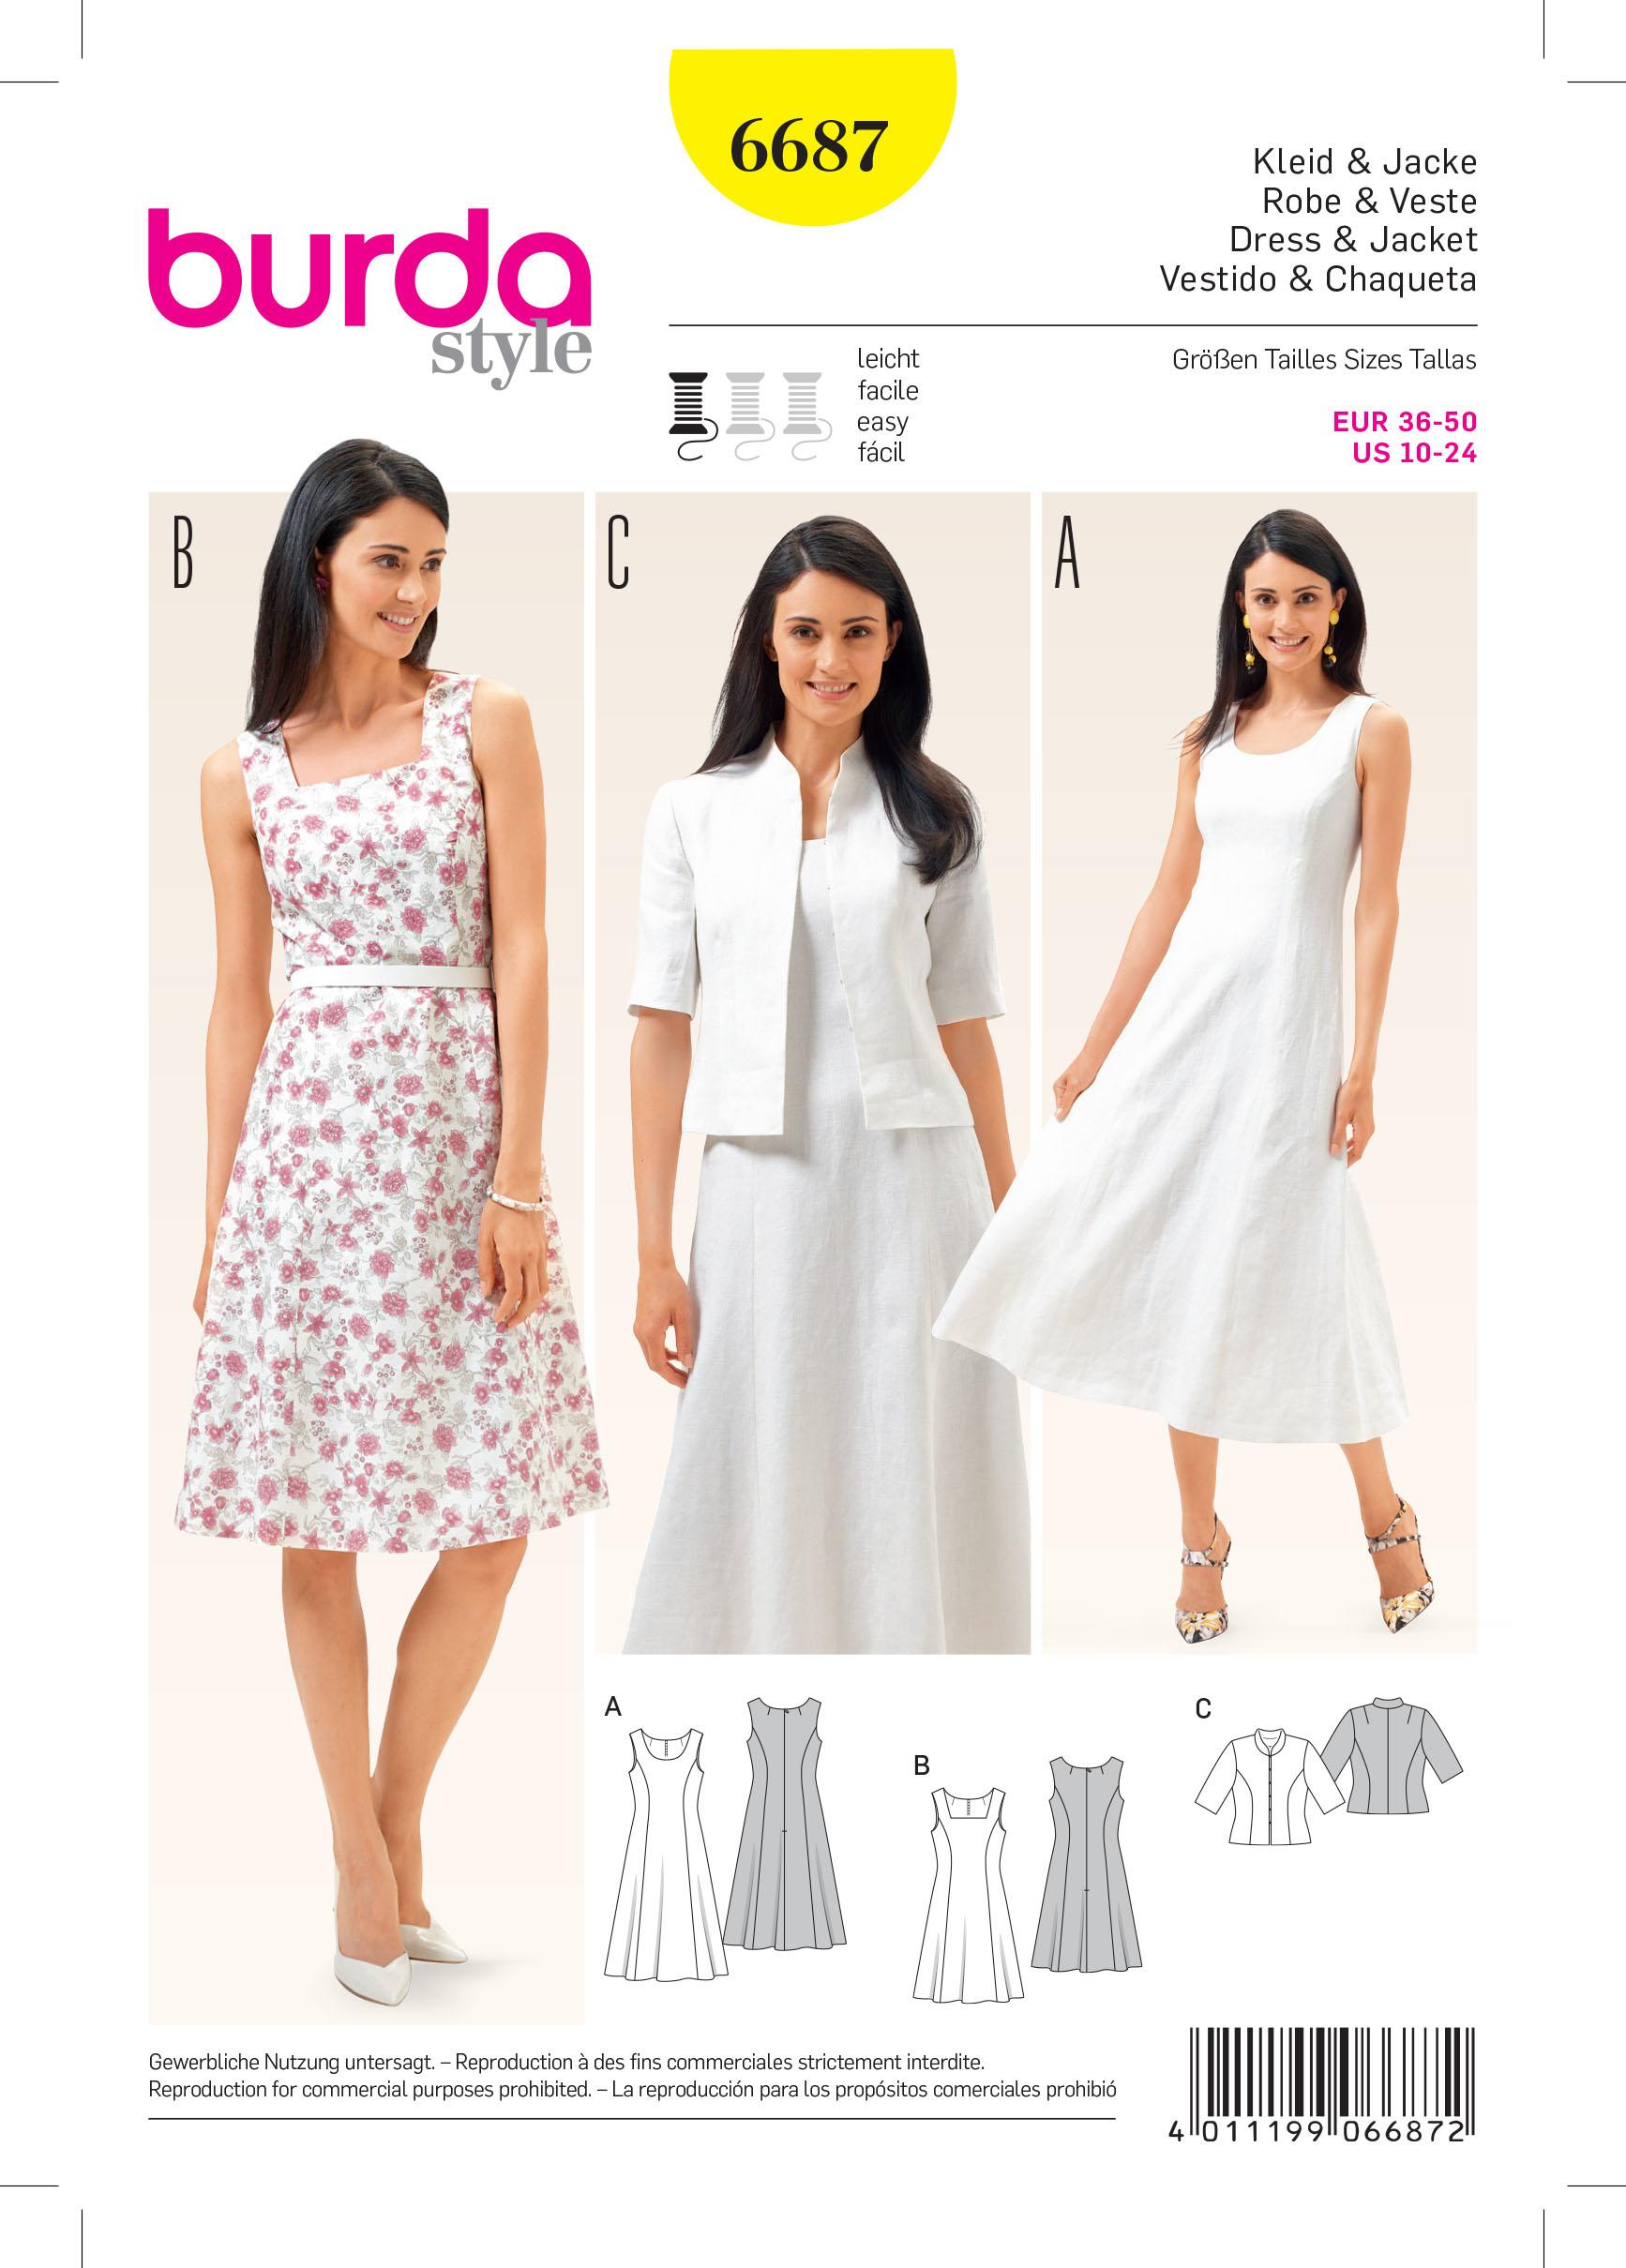 Burda B6687 Women's Dress & Jacket Sewing Pattern